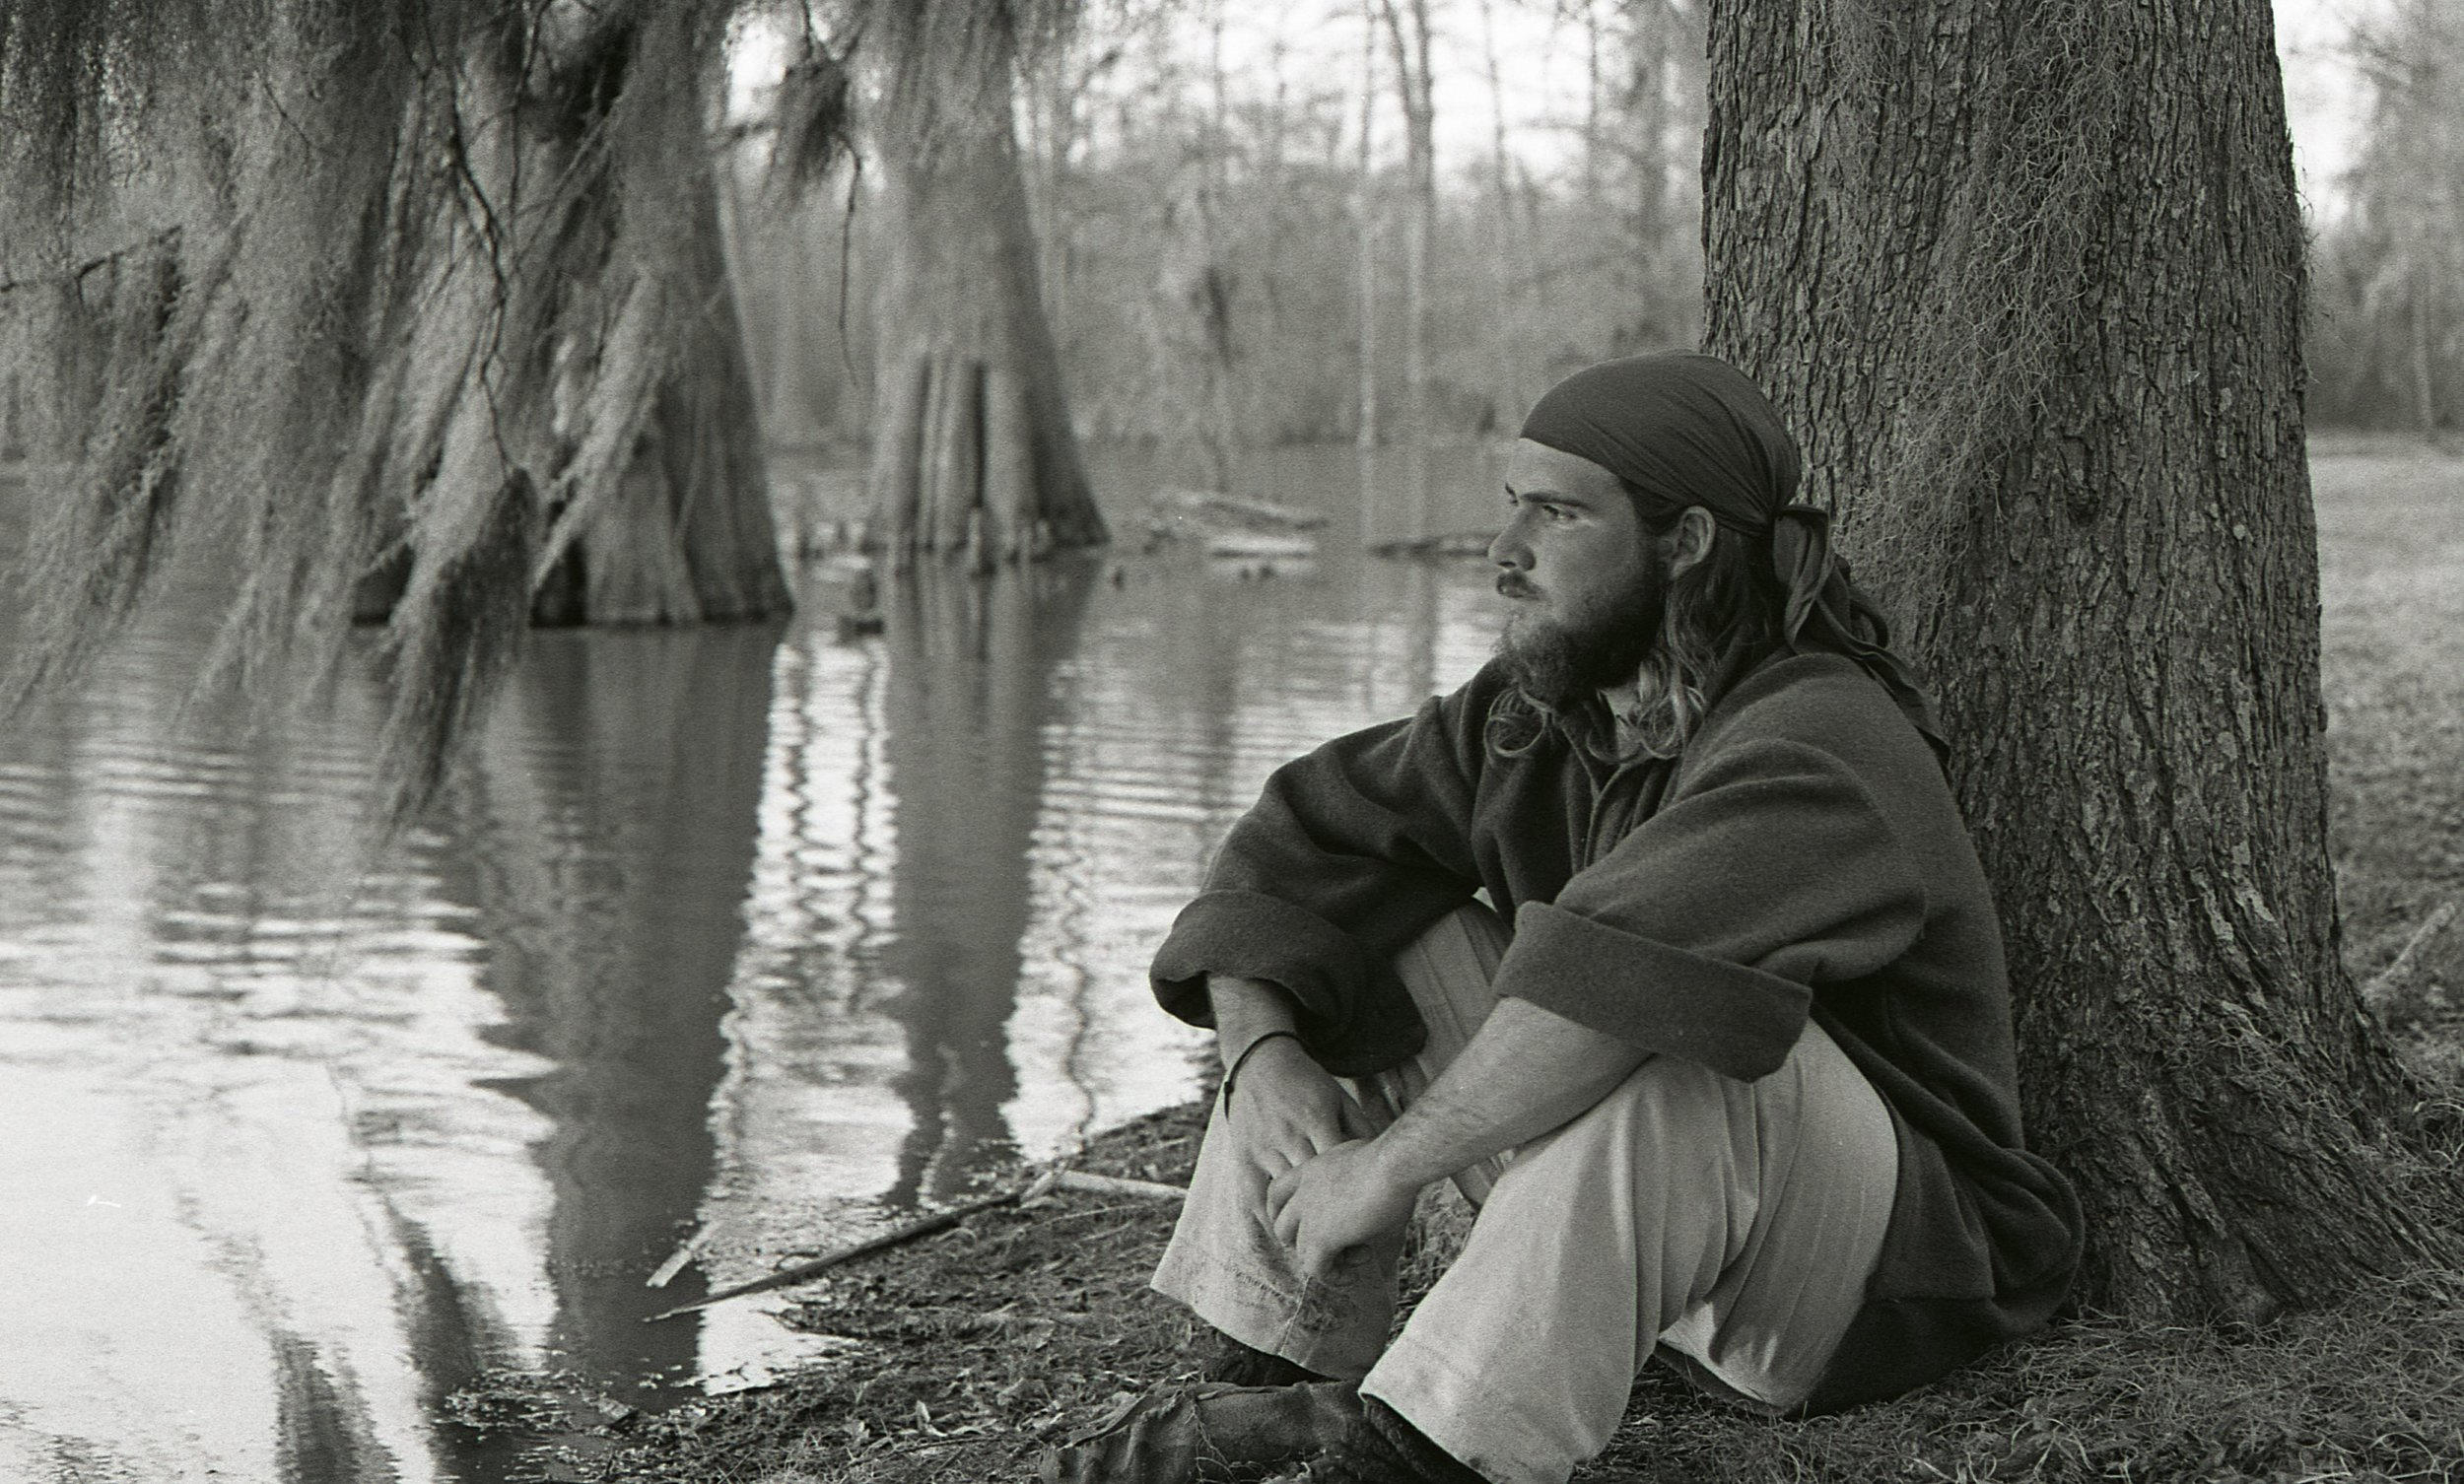 John DiFulvio leans against a tree deep in the Mississippi Delta in April 1977. As the end of La Salle: Expedition II winds down, he considers the journey's end and the many journeys of life that lie ahead. (Photo by Marc Lieberman)